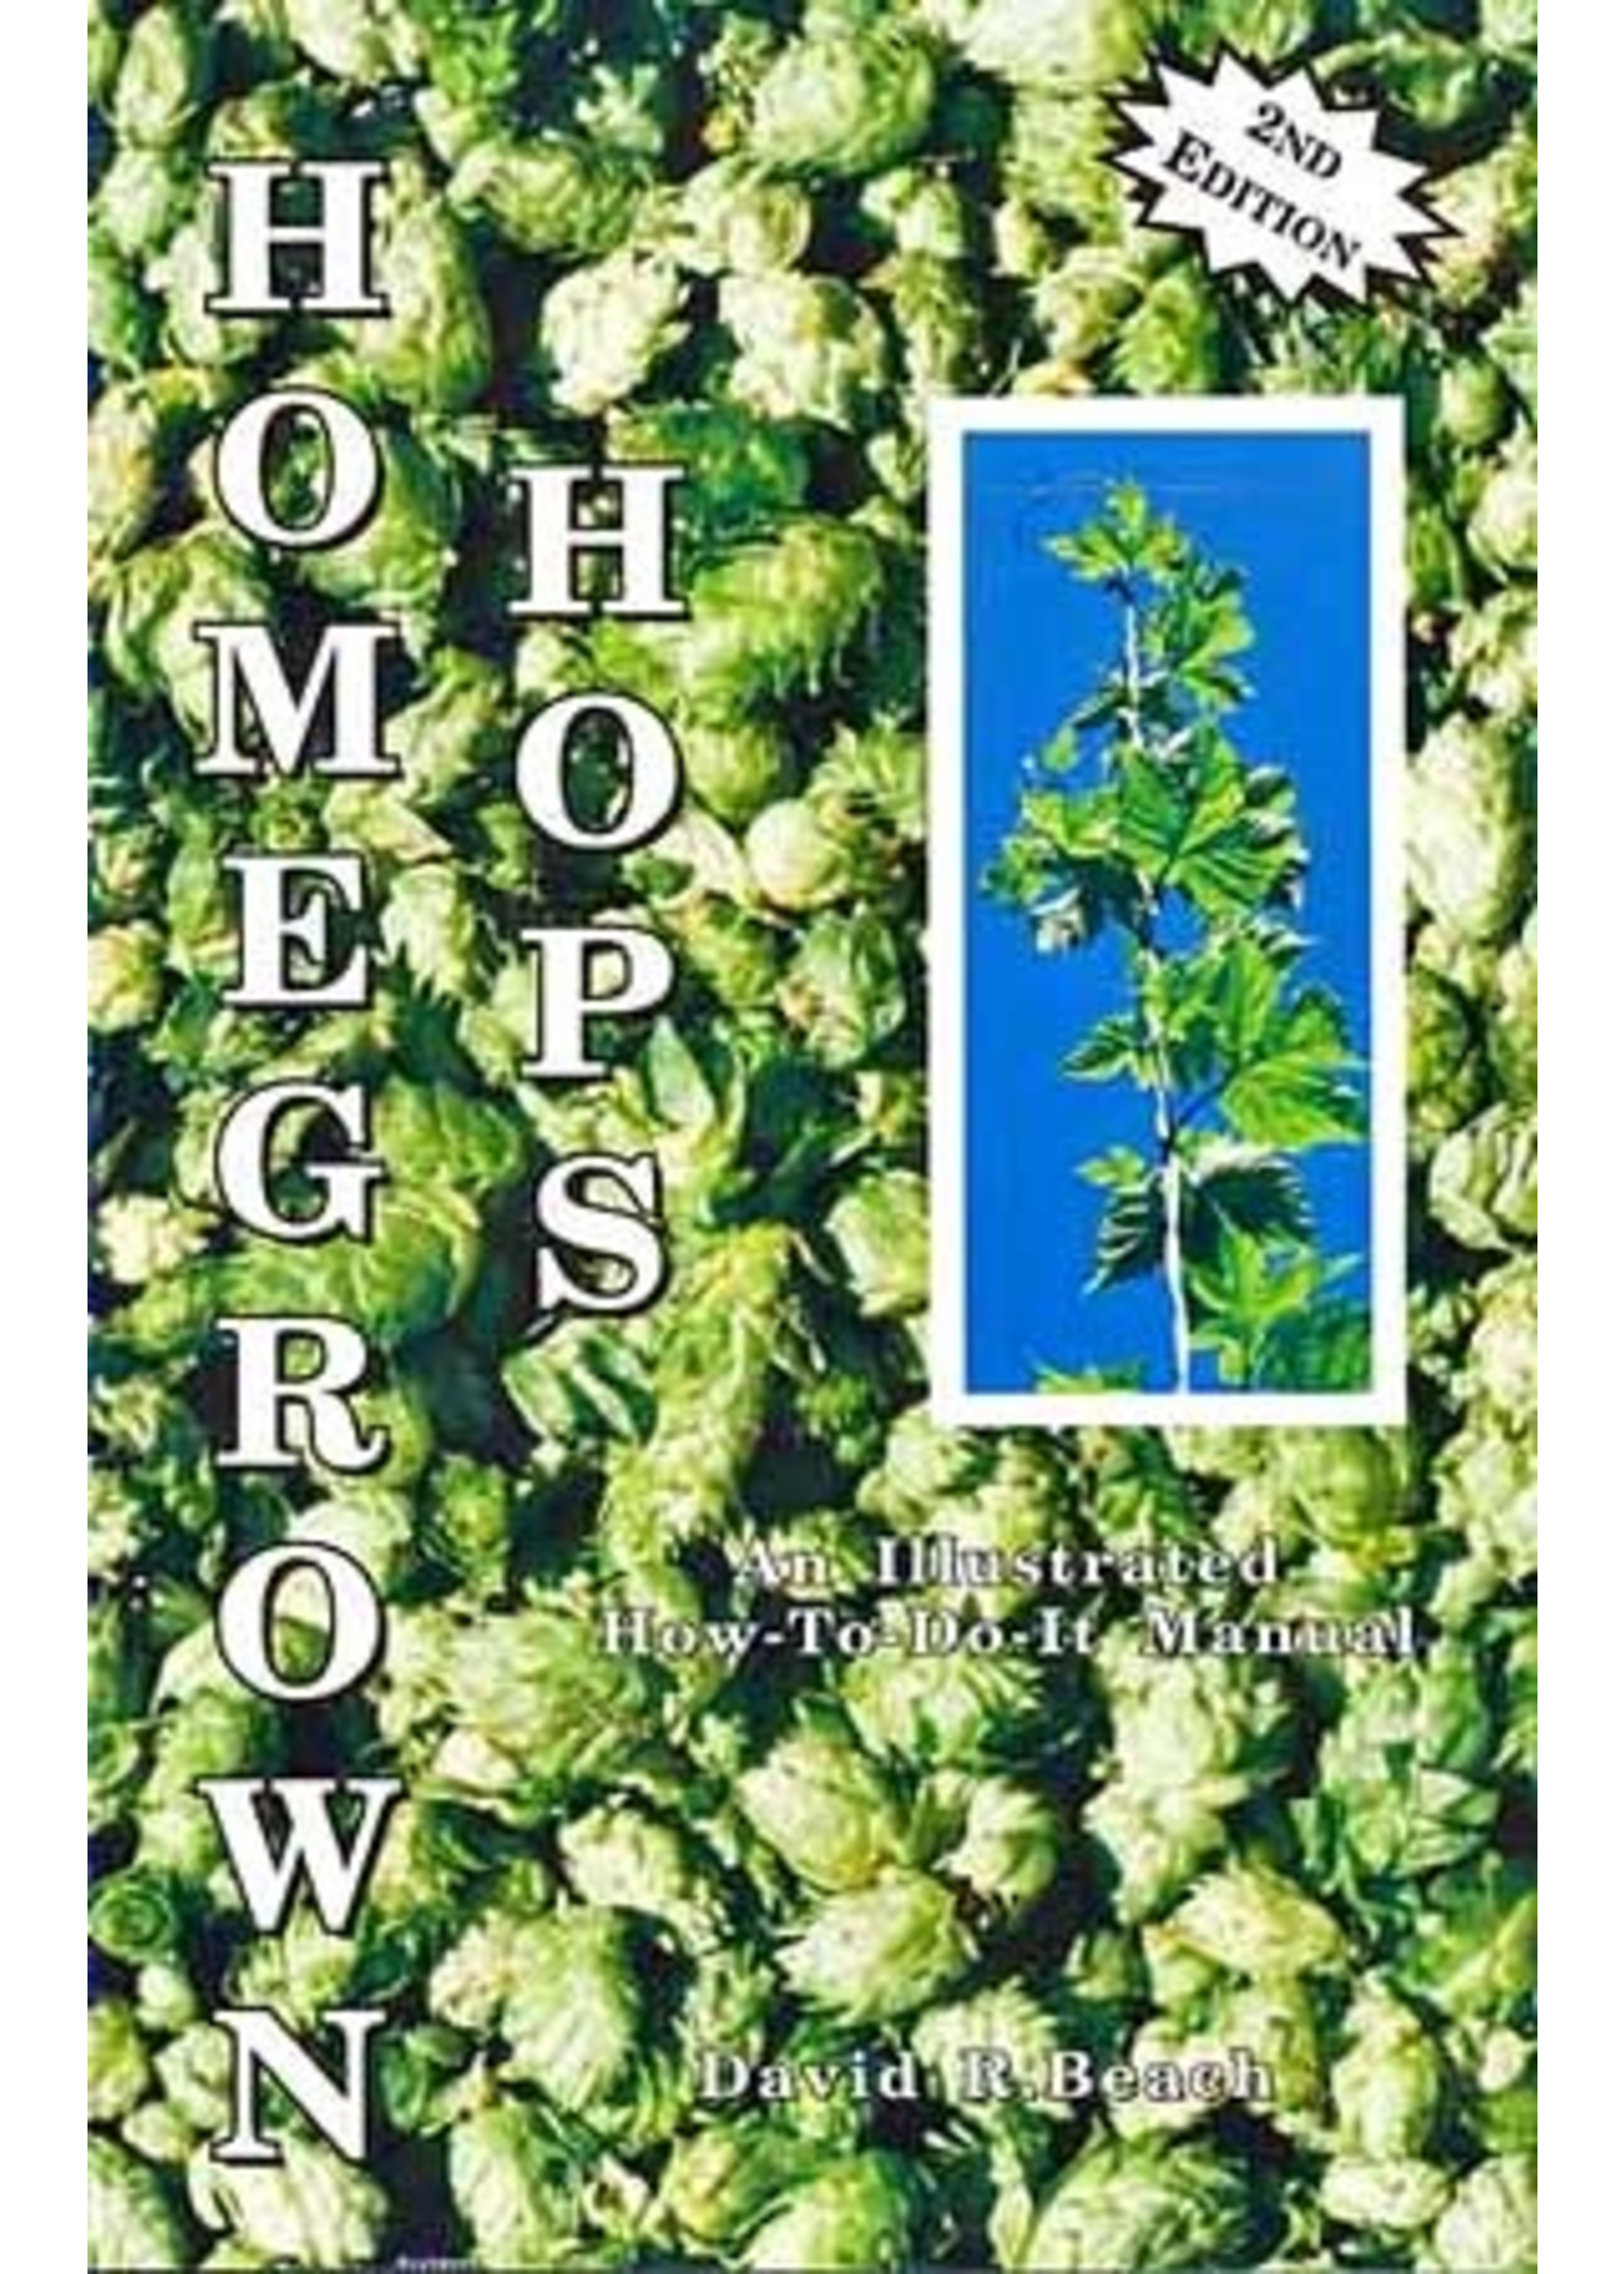 Books Homegrown Hops - How to Grow Your Own Hops At Home